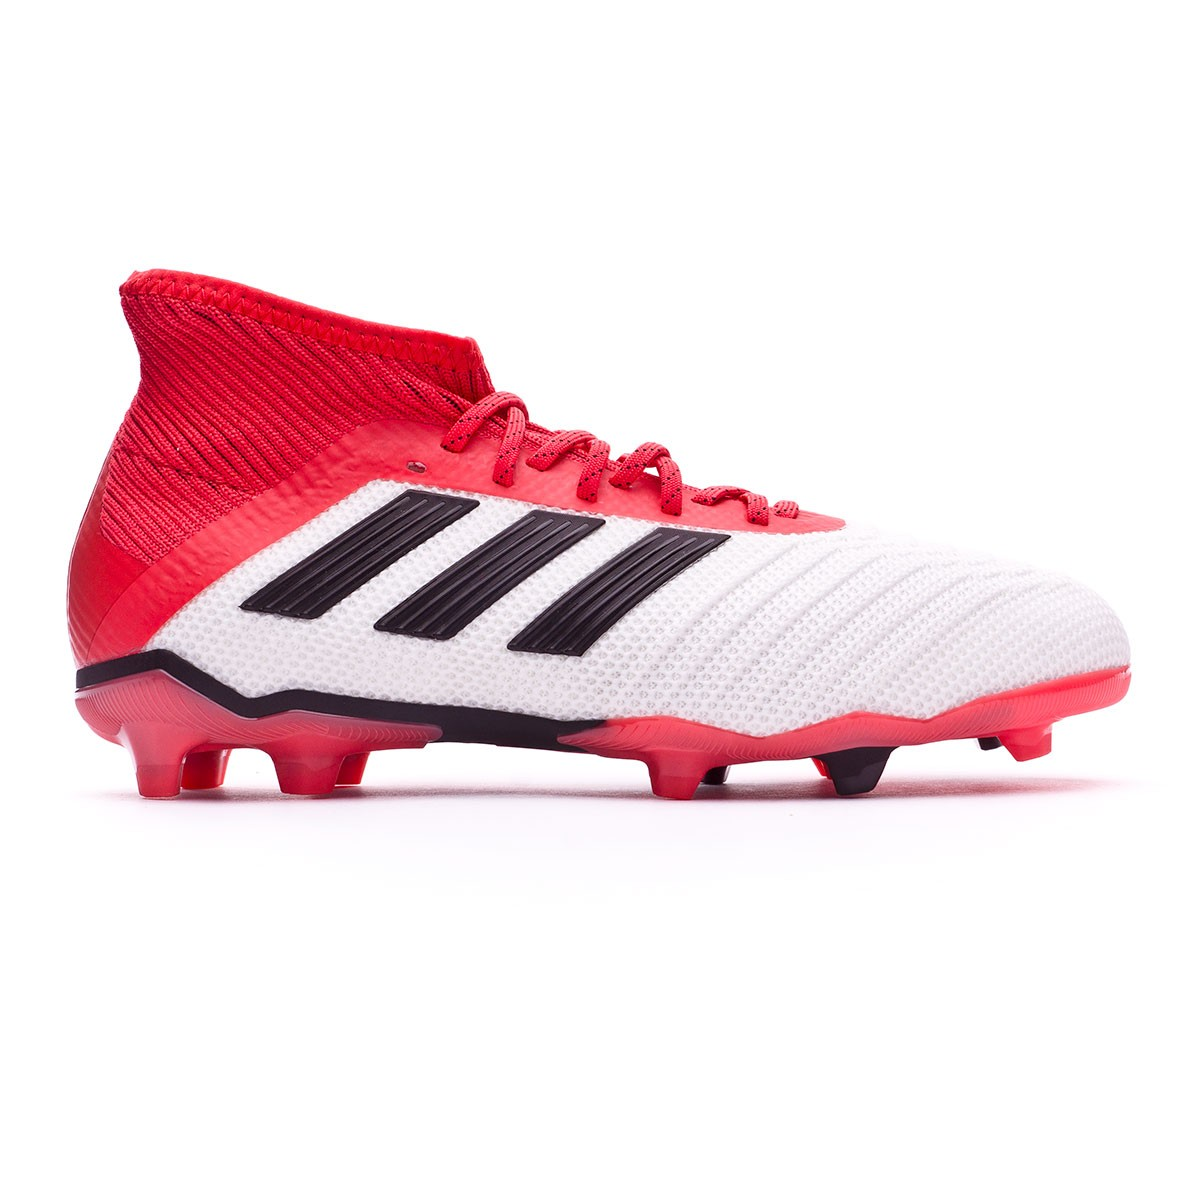 ce662ffb4600 Football Boots adidas Kids Predator 18.1 FG White-Core black-Real coral -  Tienda de fútbol Fútbol Emotion